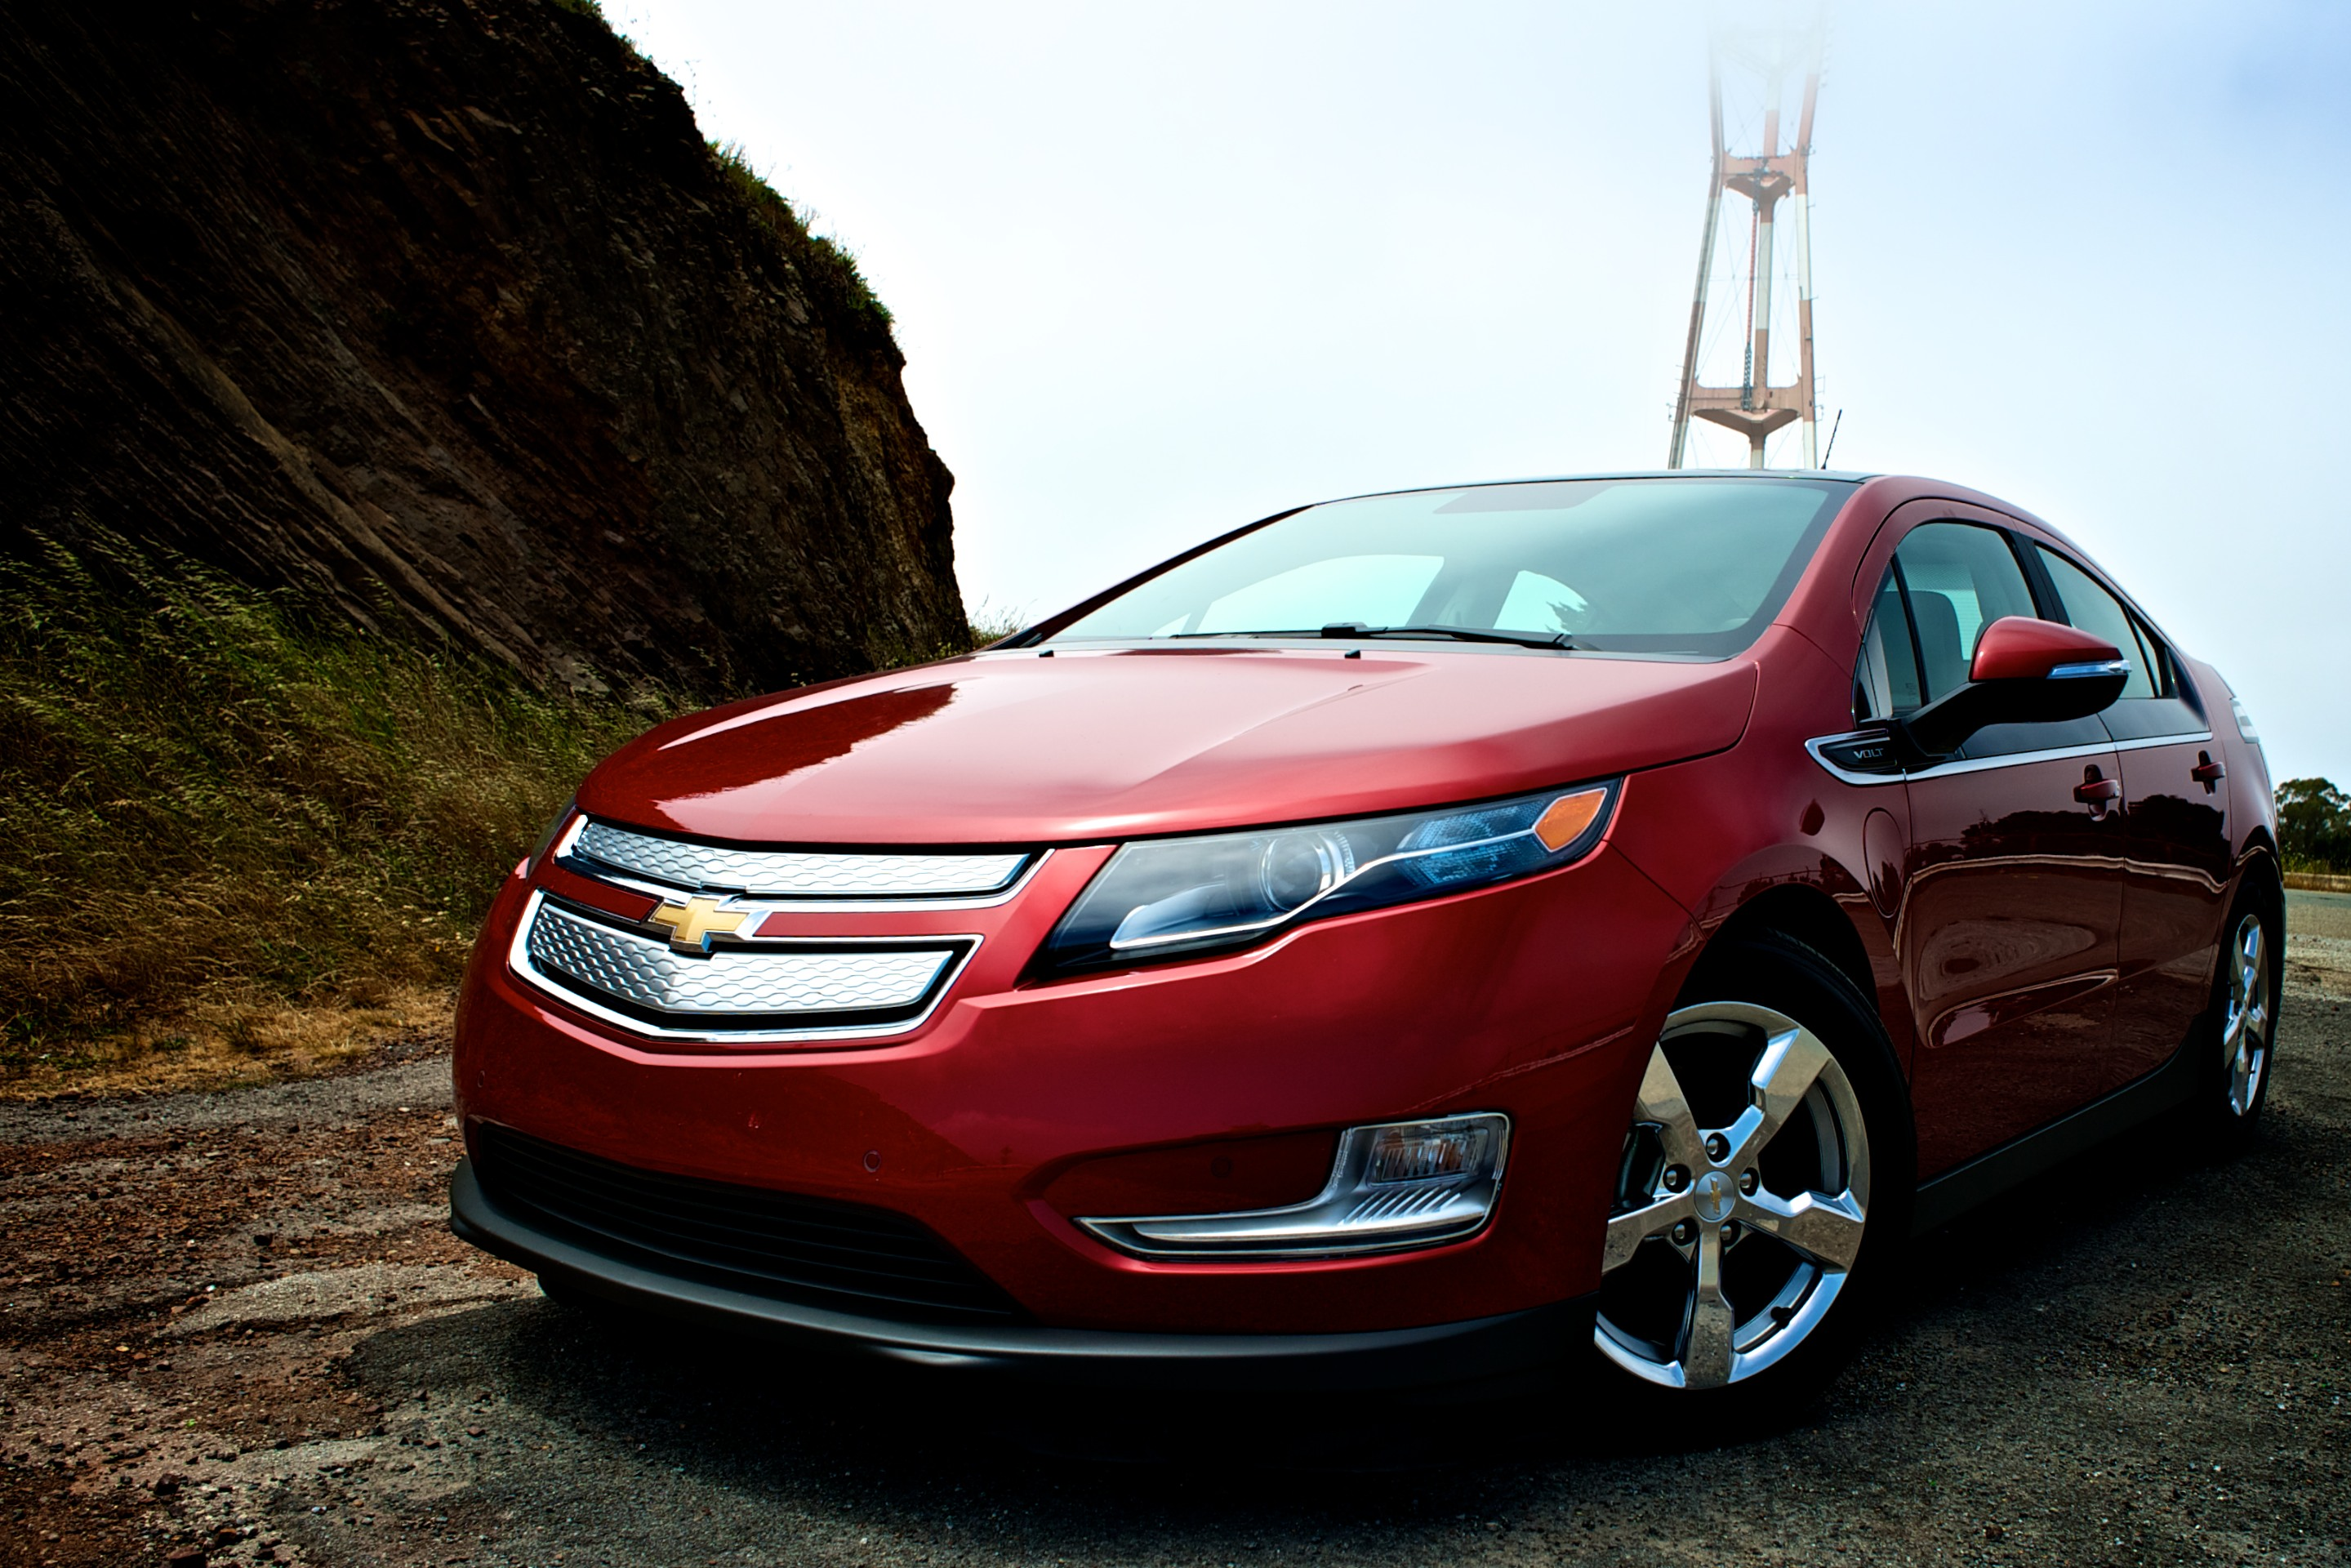 2012-Chevy-Volt-in-San-Francisco-Twin-Peaks.jpg